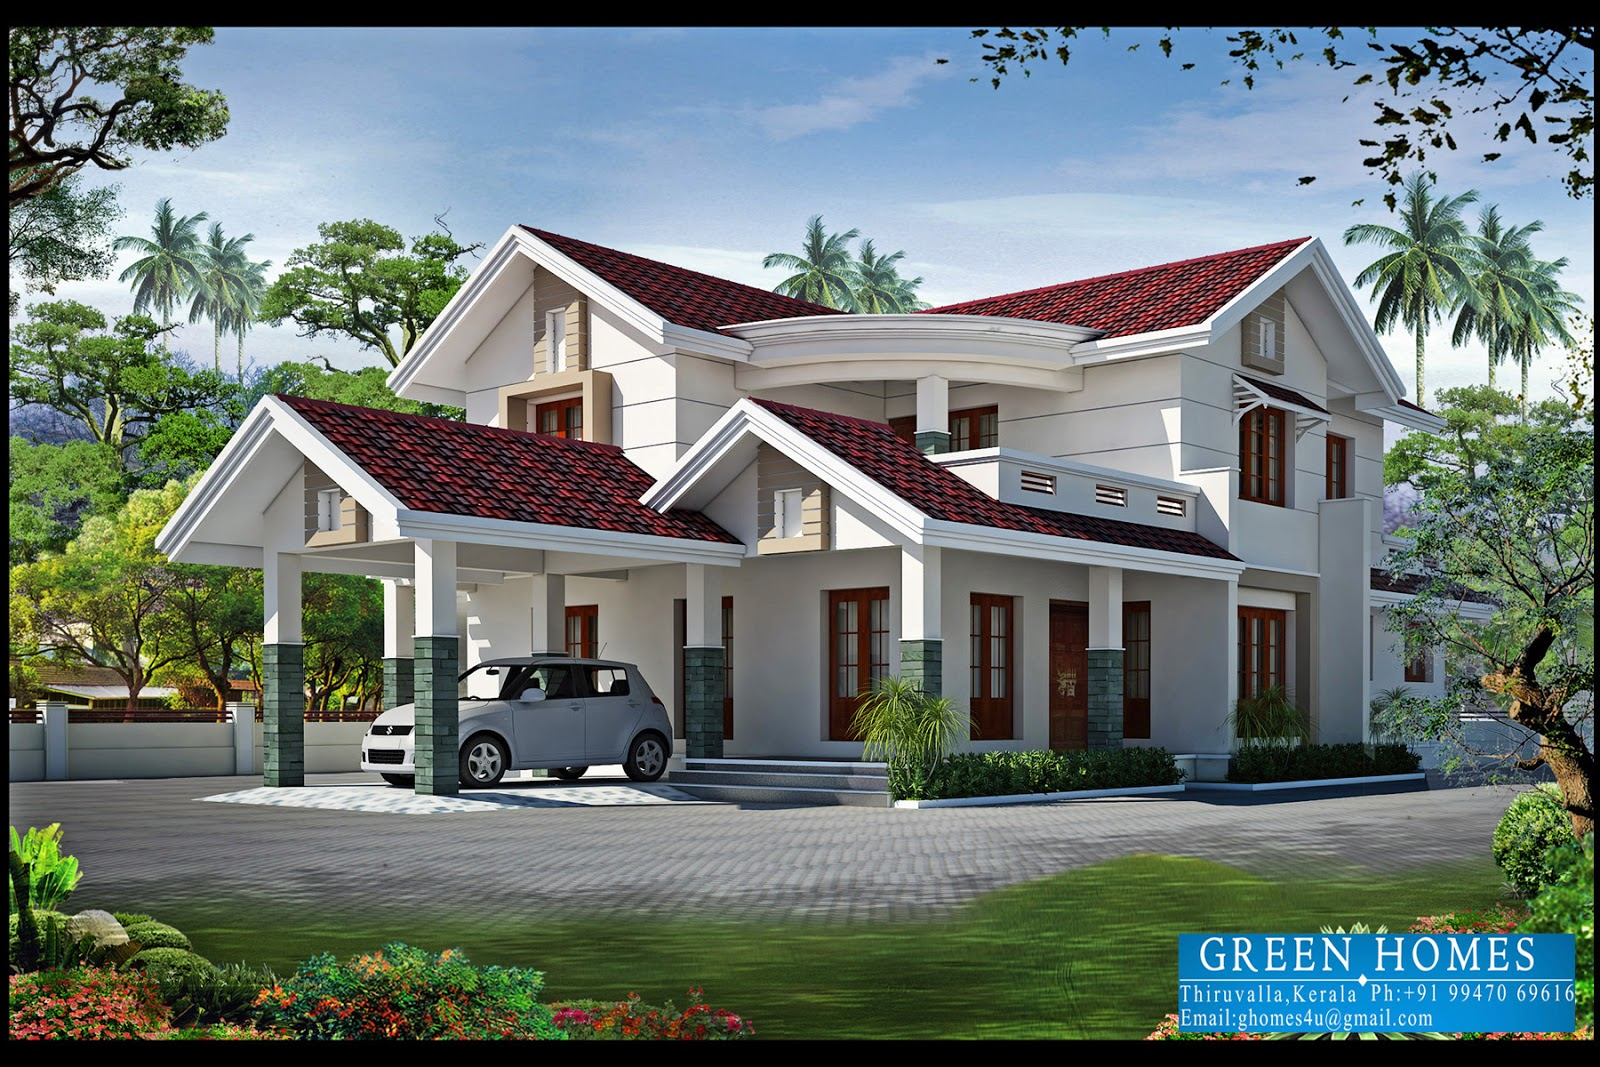 Green homes december 2012 for Kerala house designs and plans